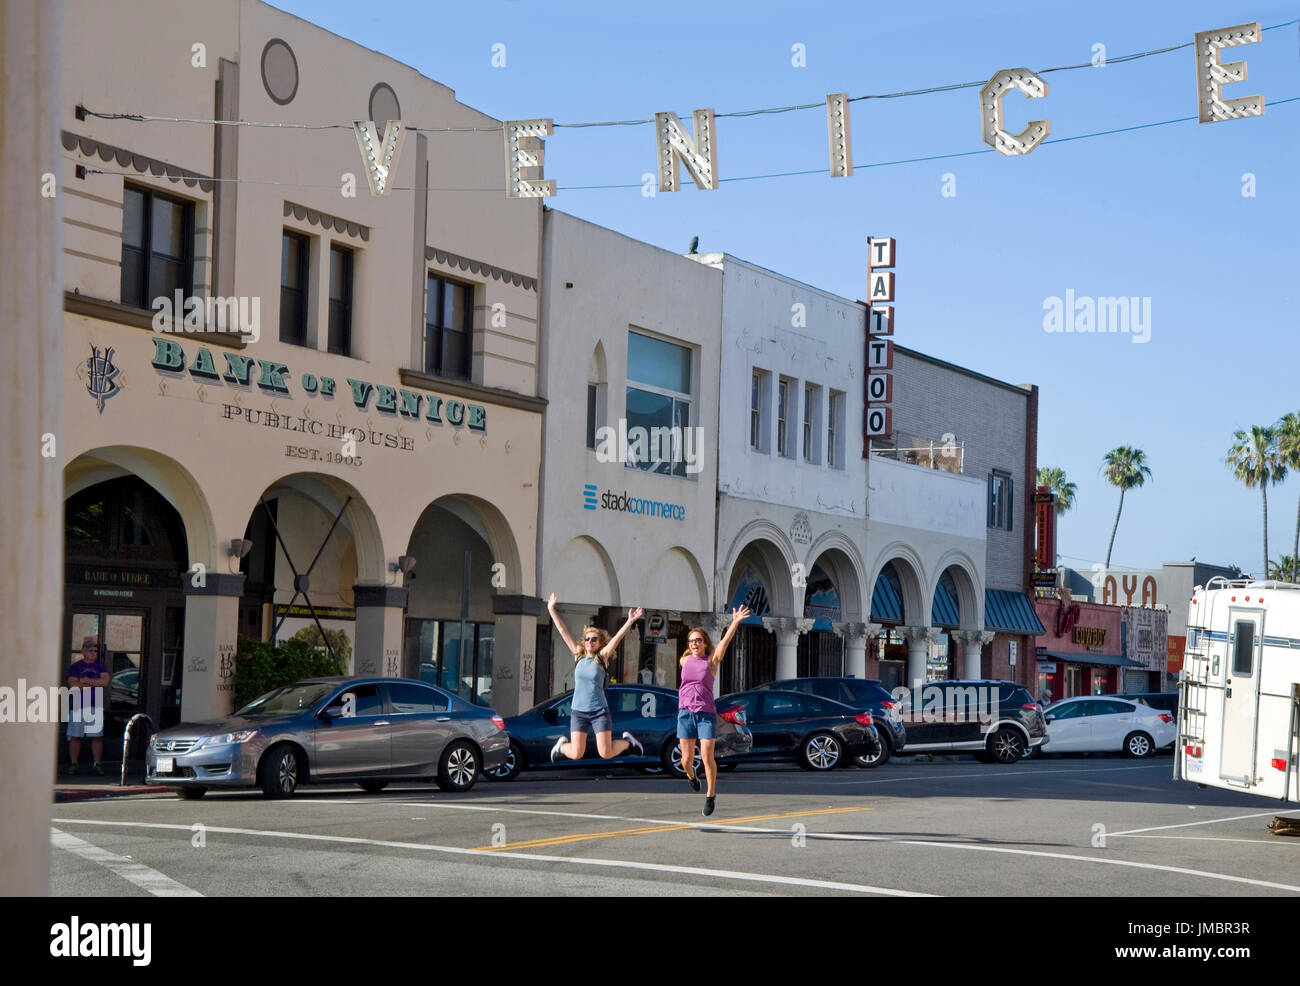 Two young woman posing for a photo jump in the air beneath the Venice Sign in Venice Beach, CA - Stock Image